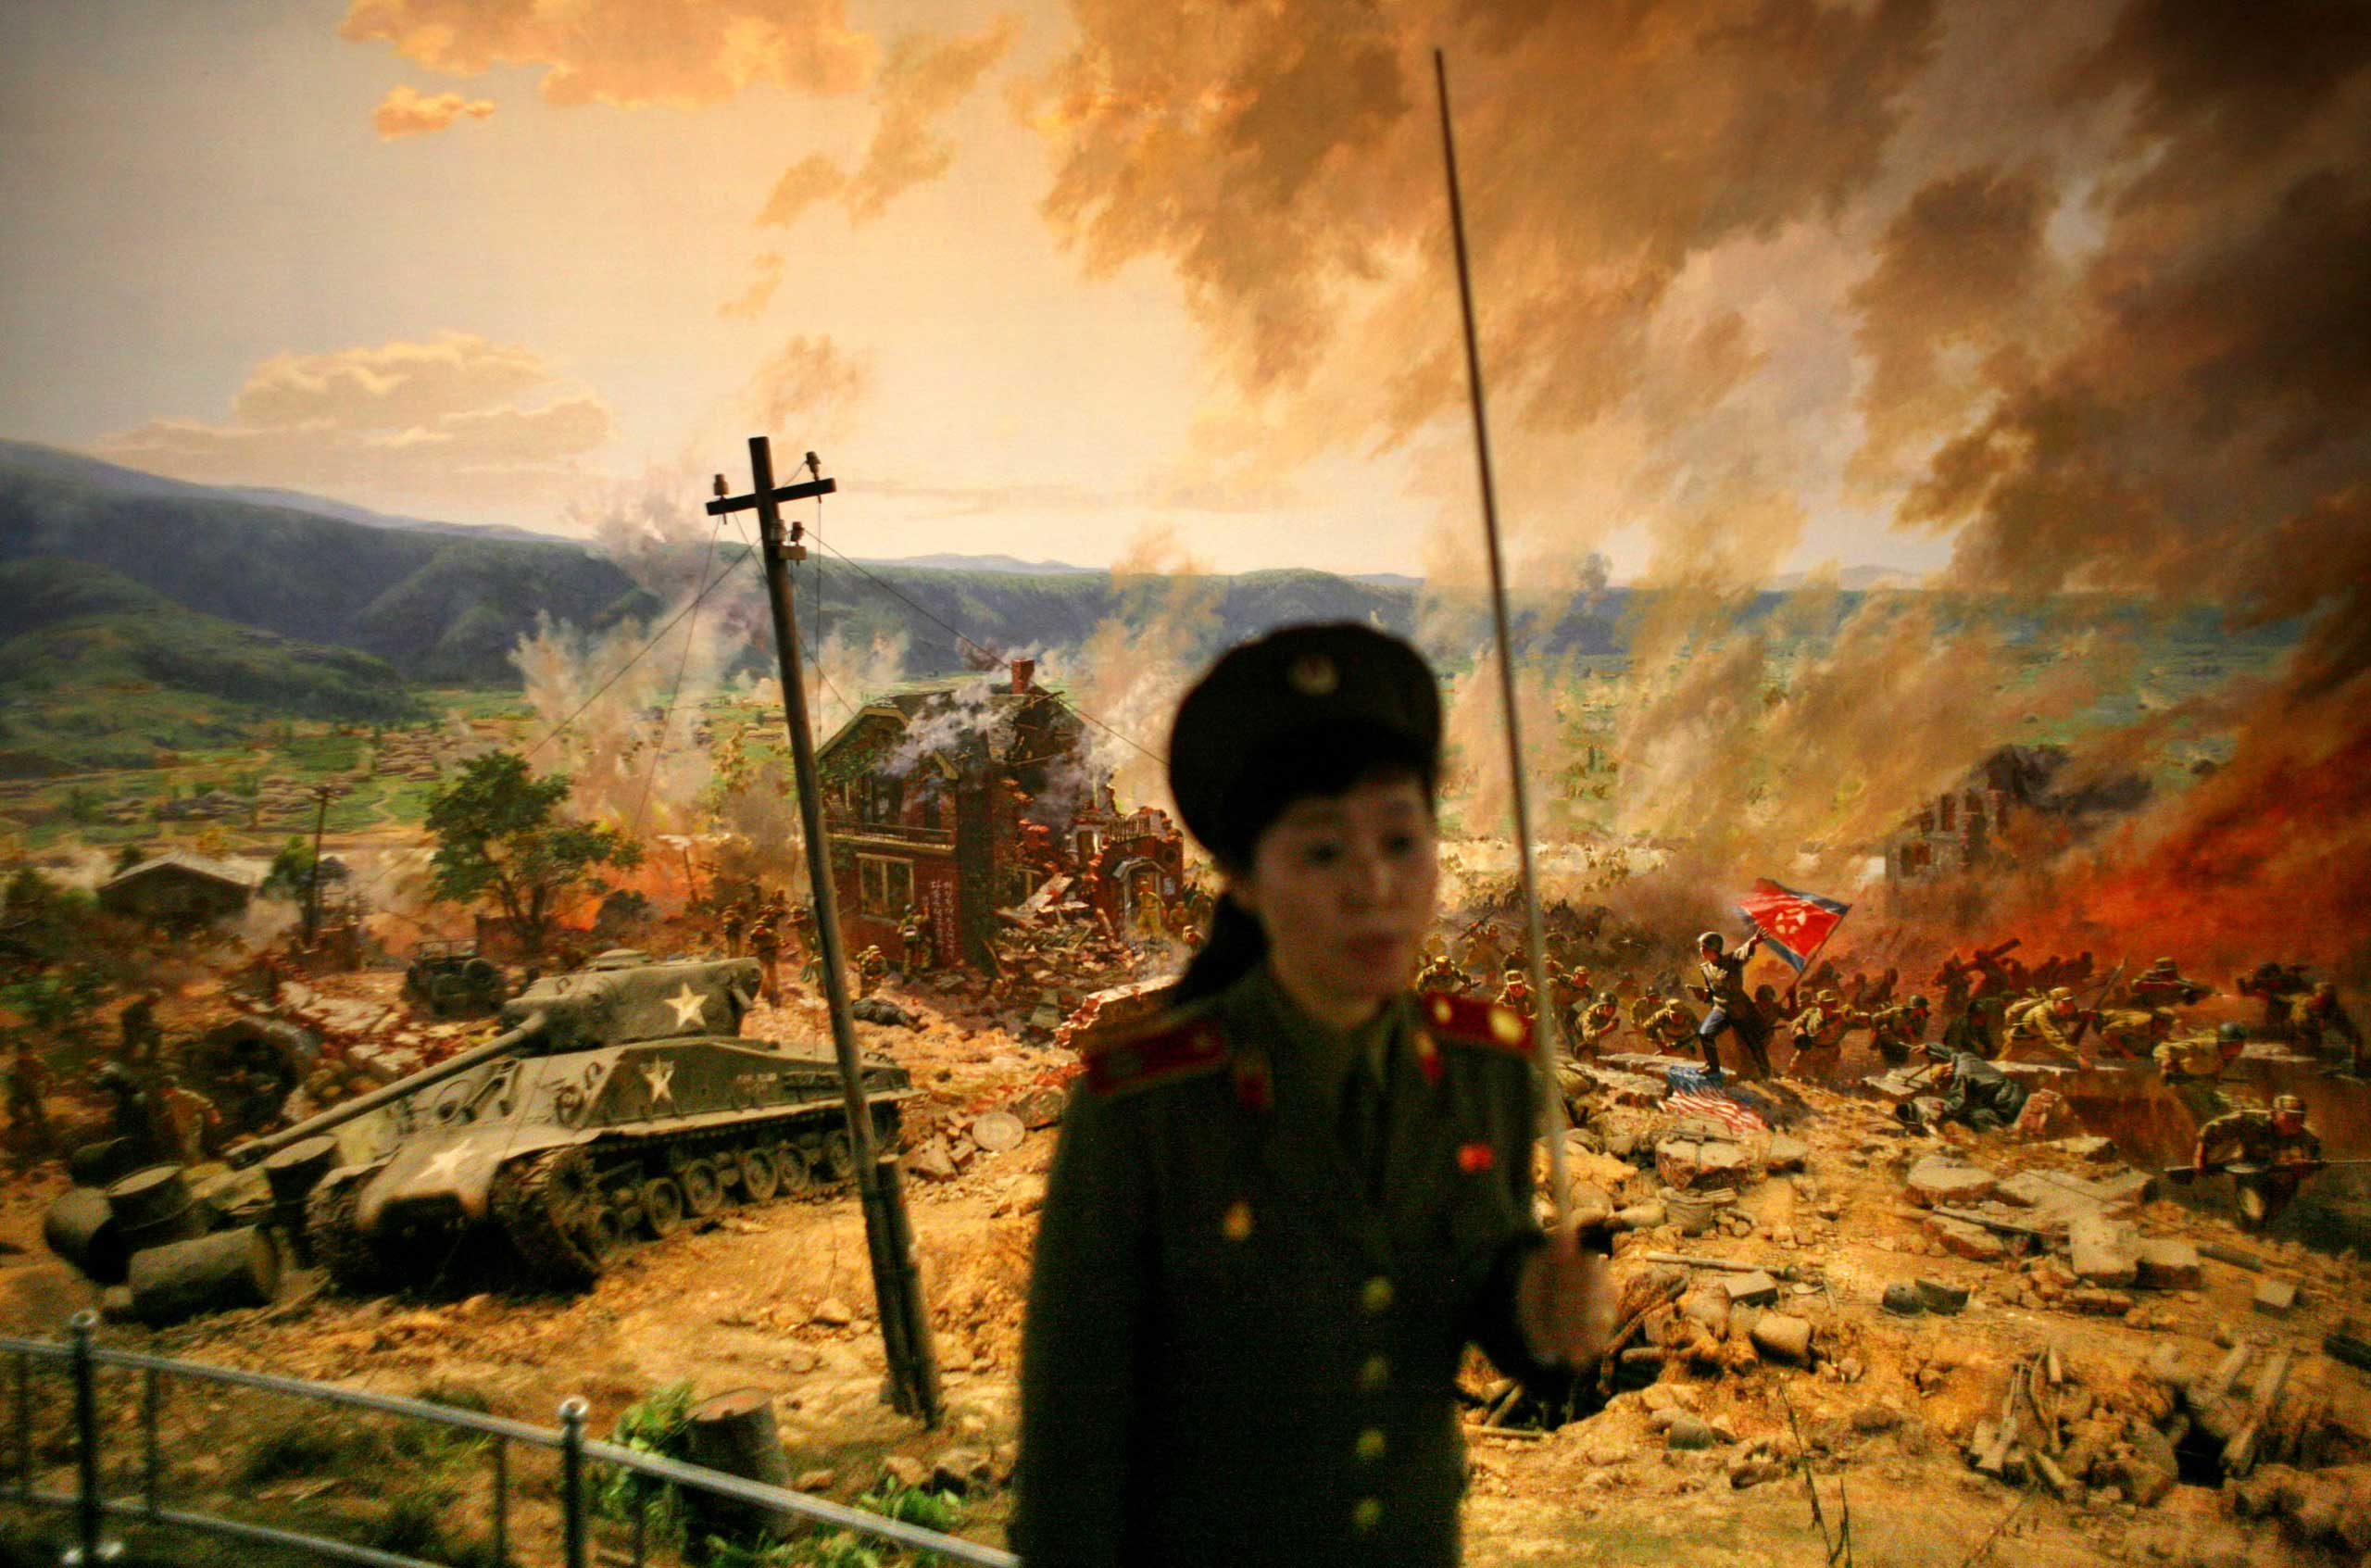 Sept. 16, 2008. A guide gives a lecture in front of a diorama showing the Korean War's 1950 battle of Taejon as she gives a tour of the War Museum in Pyongyang.